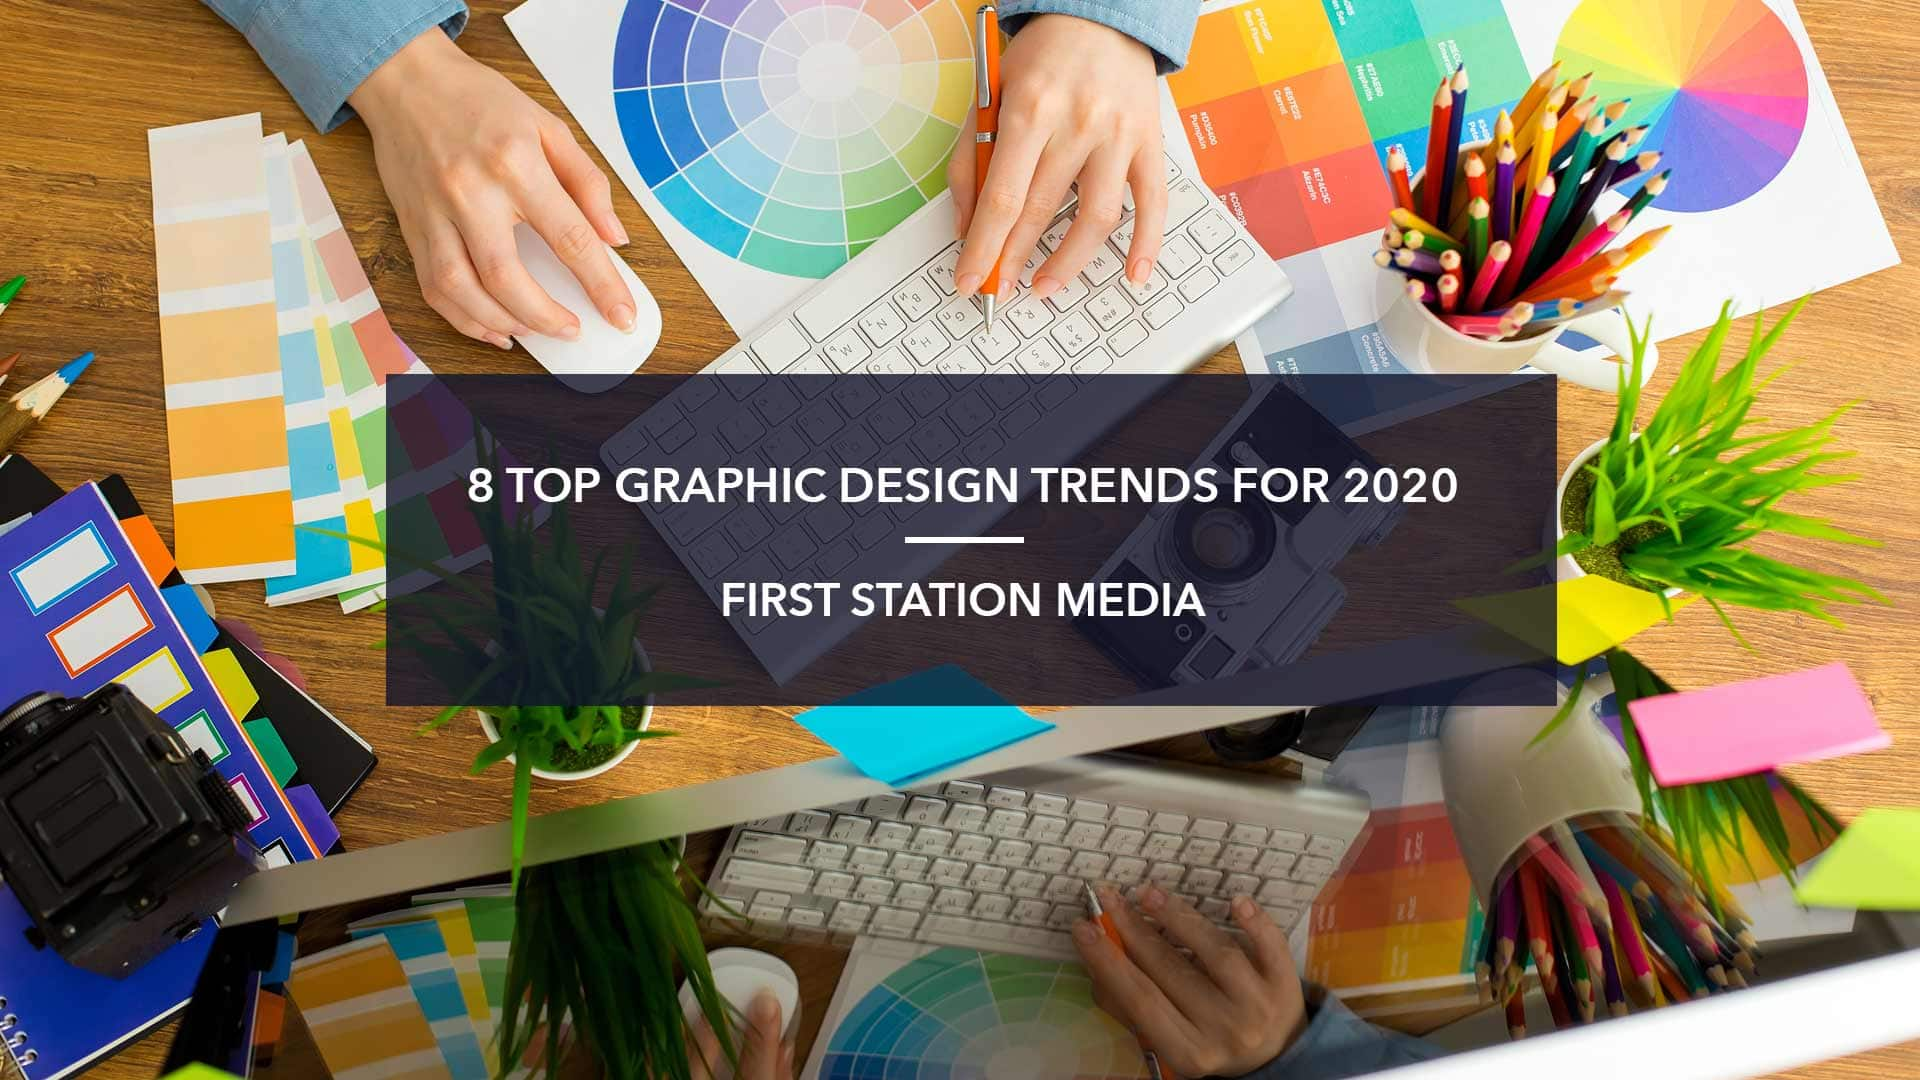 8 TOP GRAPHIC DESIGN TRENDS FOR 2020